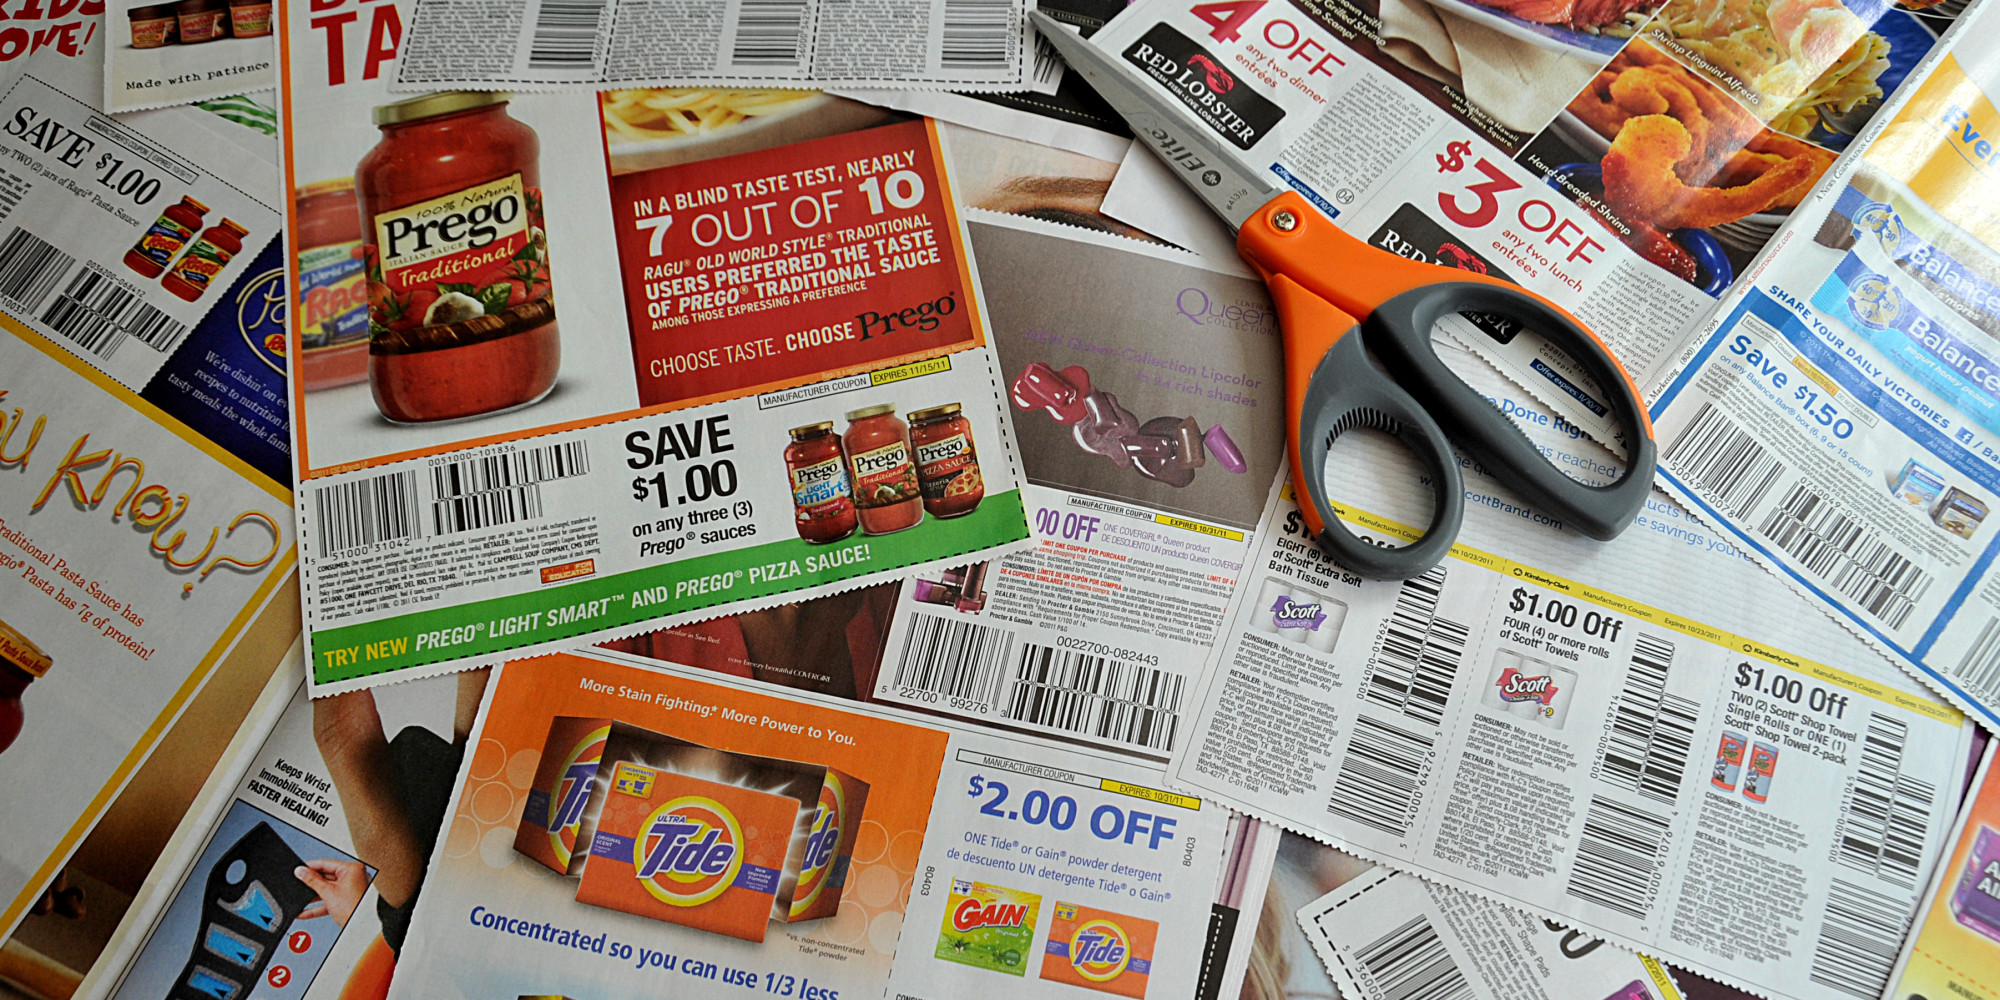 extreme couponing essay Many of you are probably searching for tips on how to extreme coupon after watching tlc's extreme couponing series should you extreme coupon  sunday papers for.